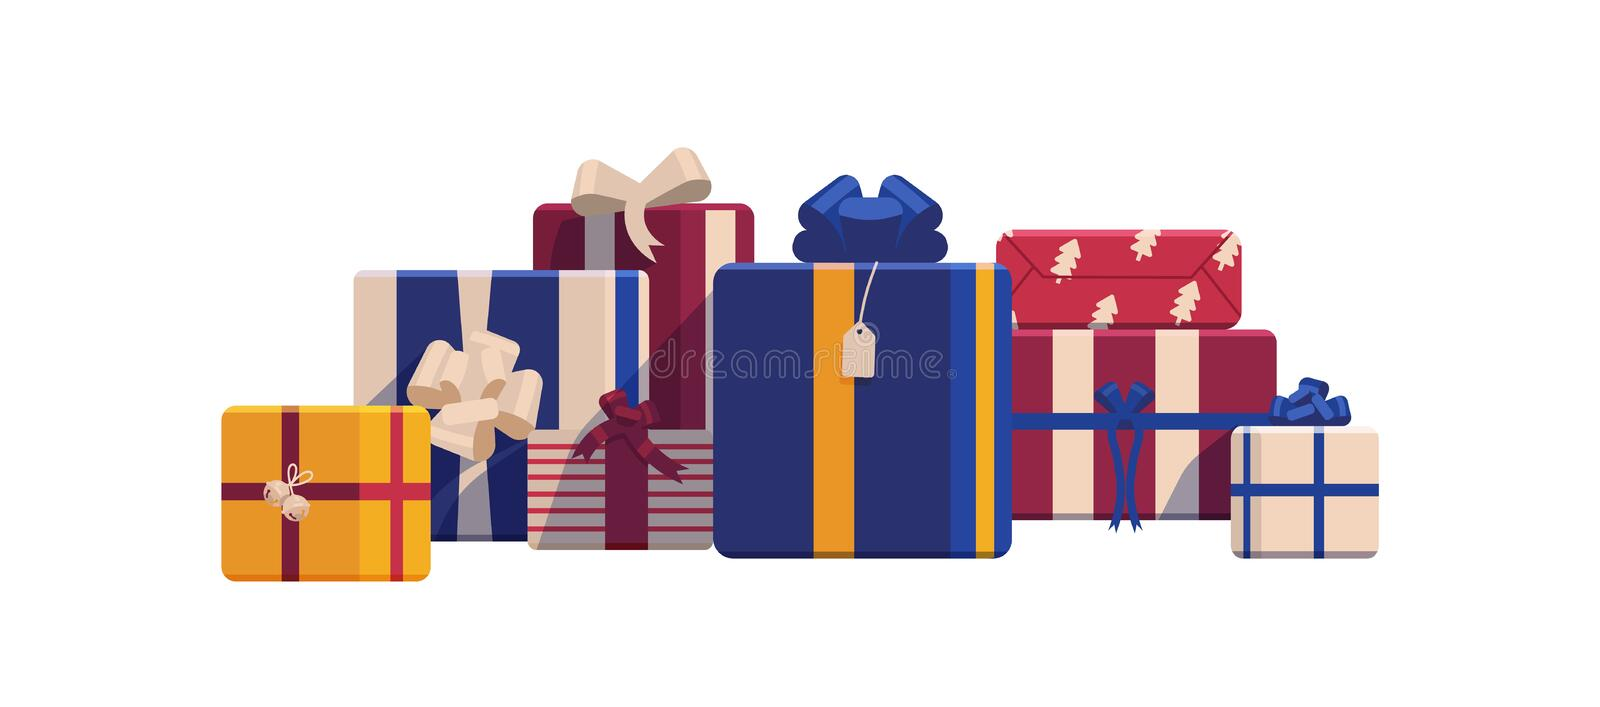 Holiday Christmas gift boxes wrapped in bright colored paper and decorated with ribbons and bows. Packed festive. Presents isolated on white background royalty free illustration